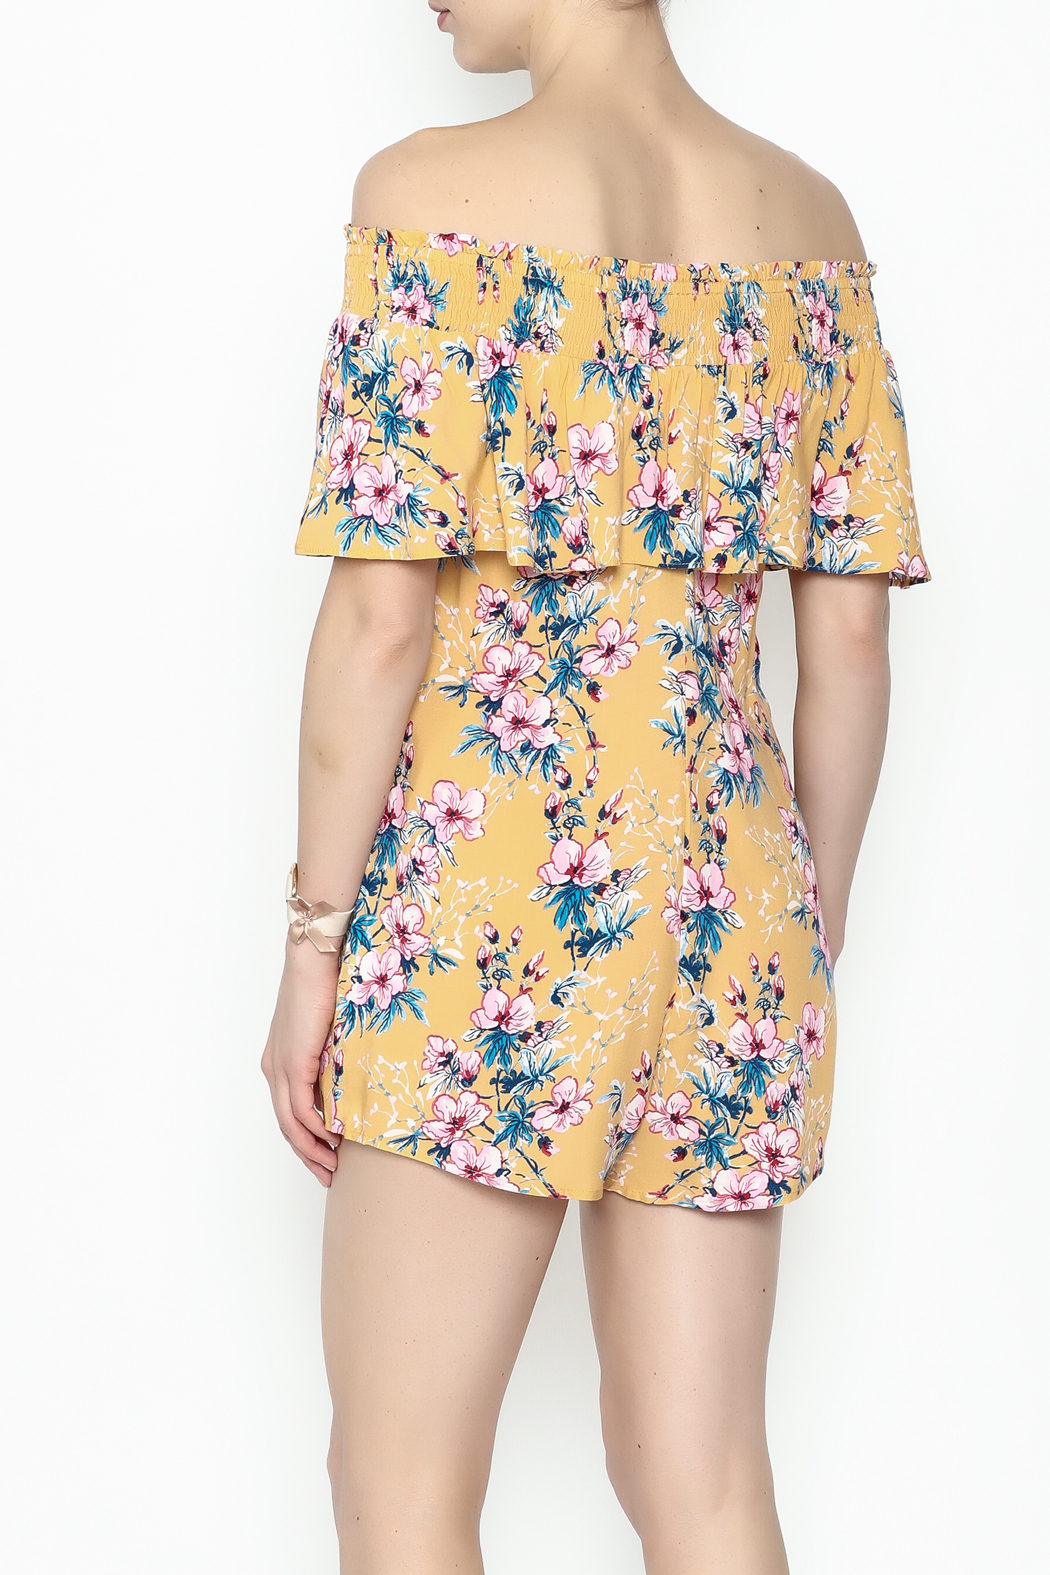 Cotton Candy Tropical Destiny Romper - Back Cropped Image